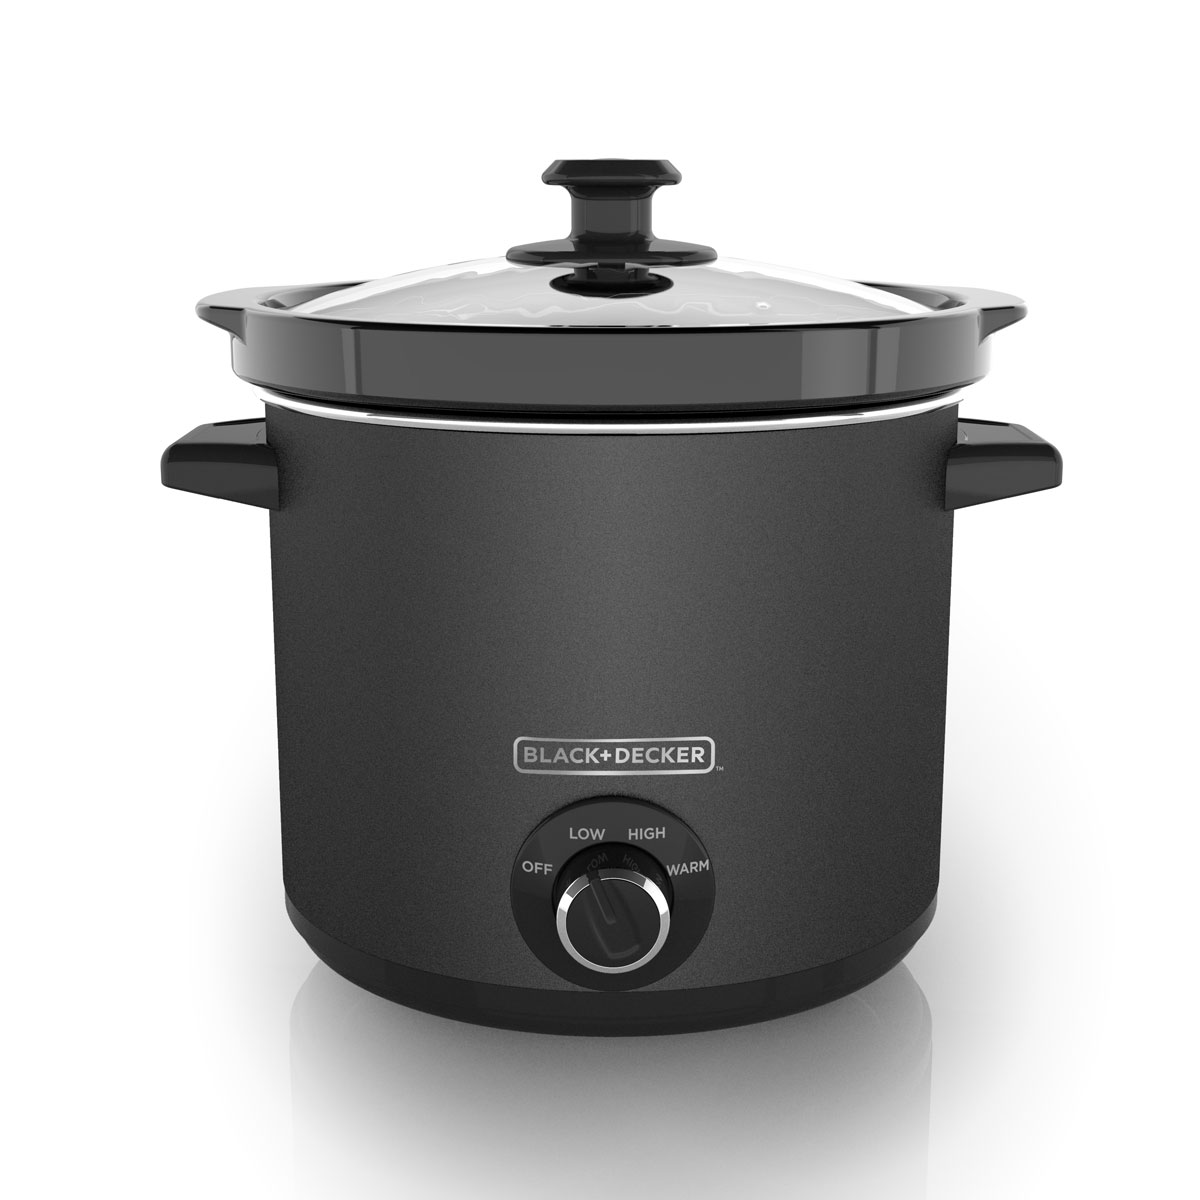 Black + Decker Crock Pot